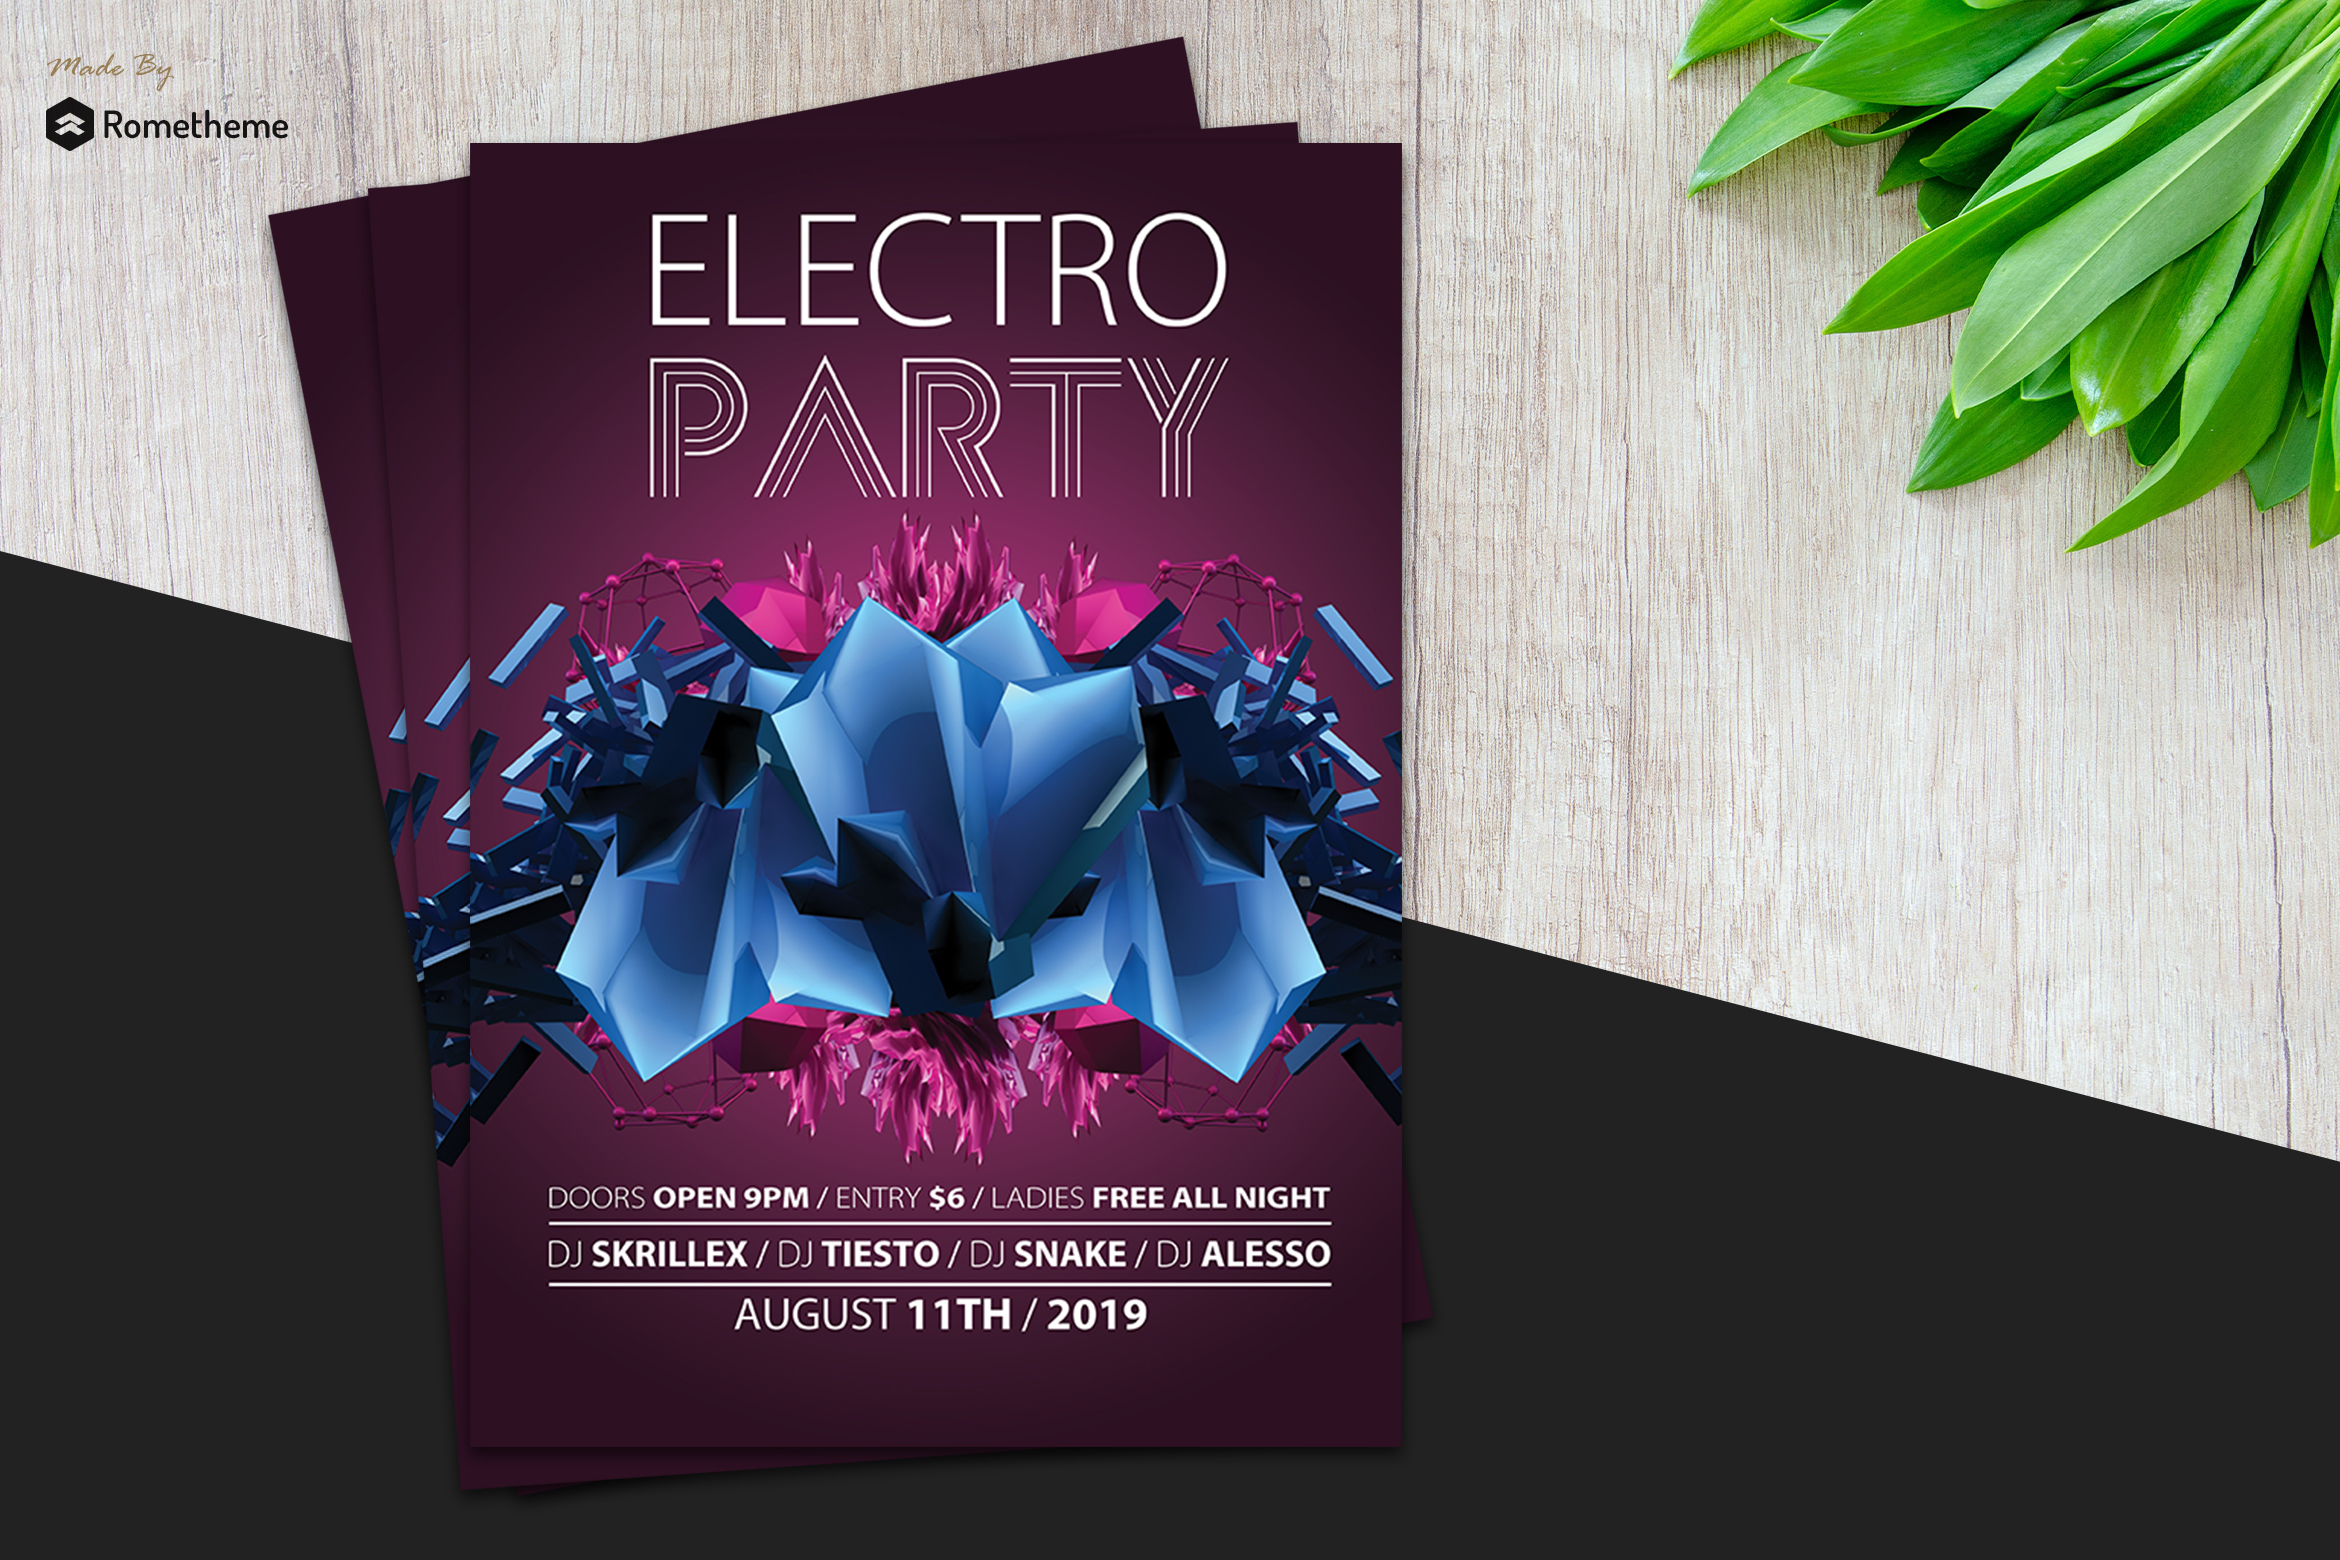 Abstract Electro Flyer vol.1 example image 1